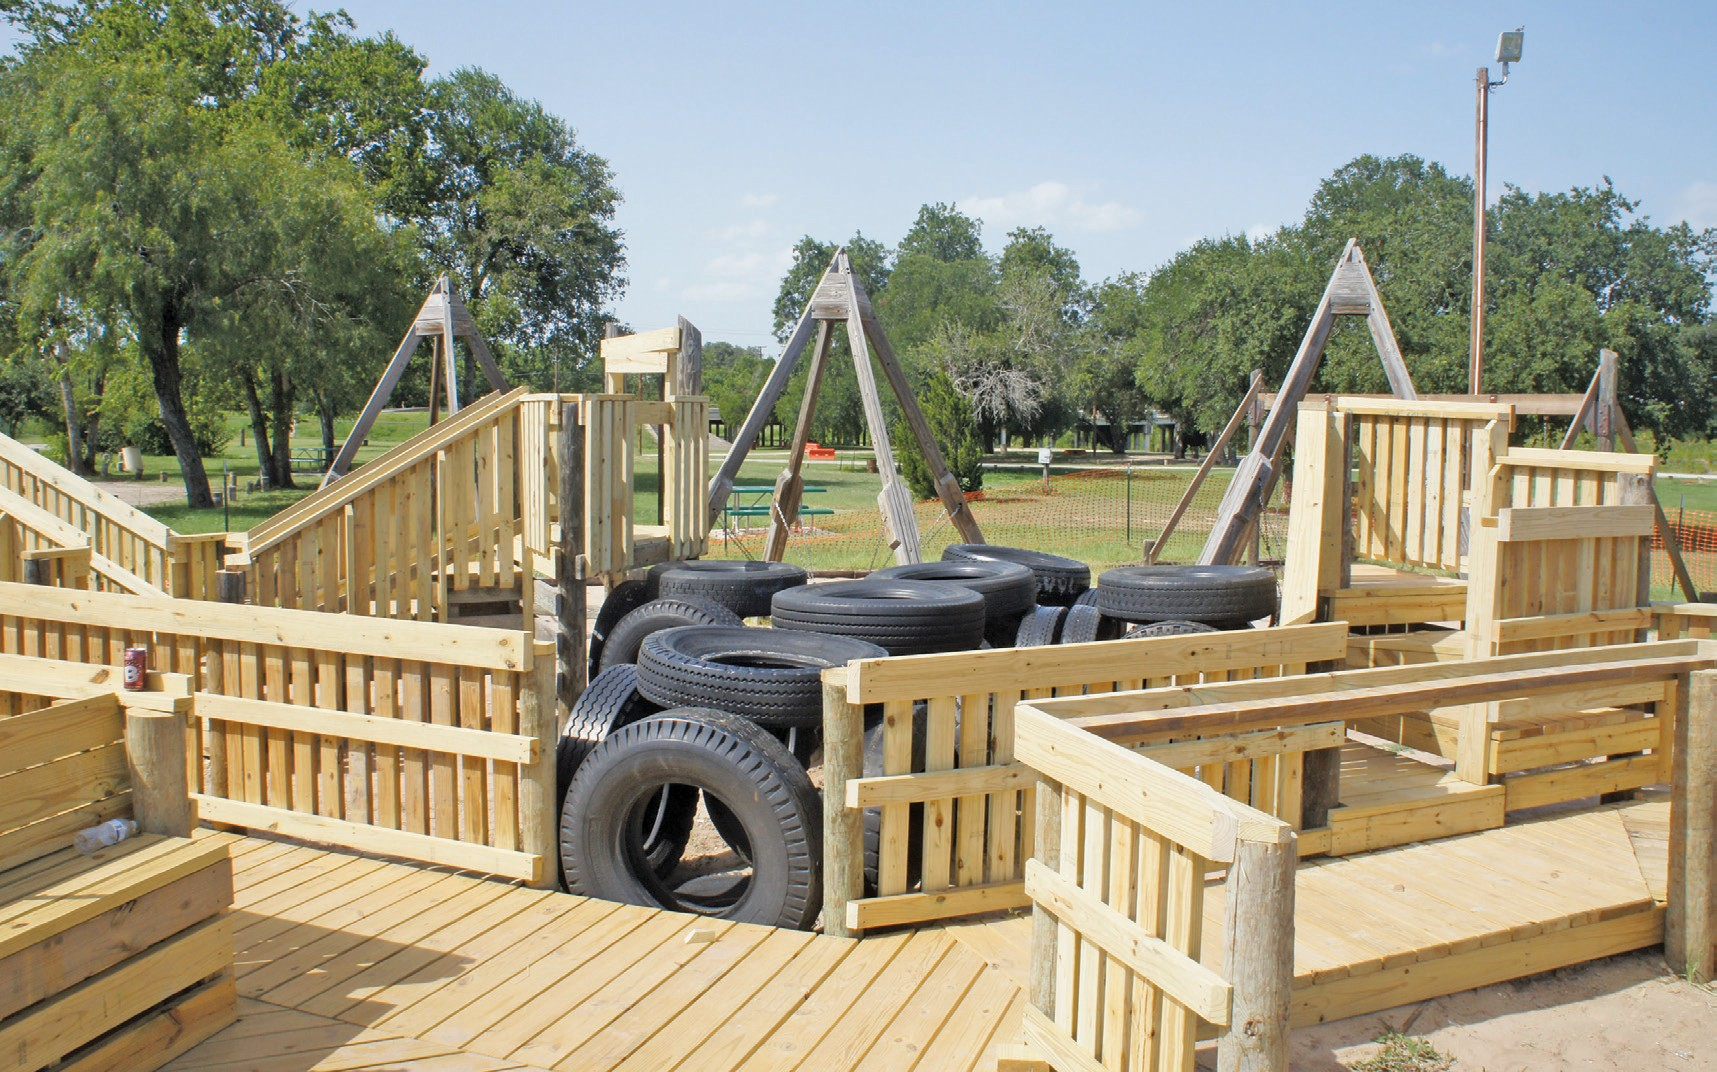 The reconstruction of the playscape at the Atascosa River Park in Pleasanton continues, by Robert Garcia and crew. The newly reconstructed portions of the playscape strike a contrast between the older wood in the background.